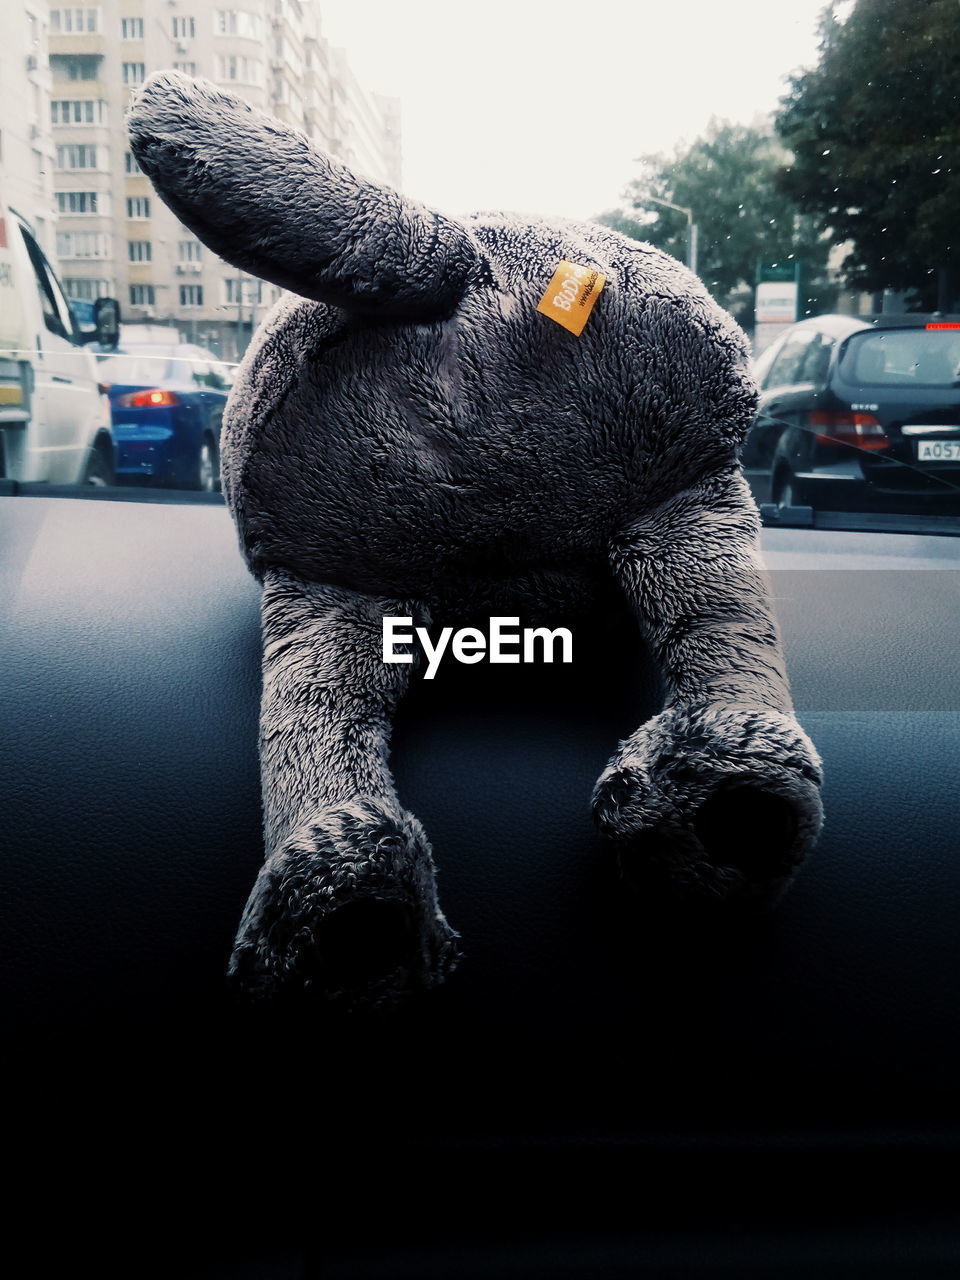 EyeEm Selects Car Close-up Leopard Vehicle Big Cat Krüger National Park  Undomesticated Cat Animal Markings Cat Family Side-view Mirror Bus Spotted Rainy Season Land Vehicle Clown Stuffed Toy Parking Windshield Toy Animal